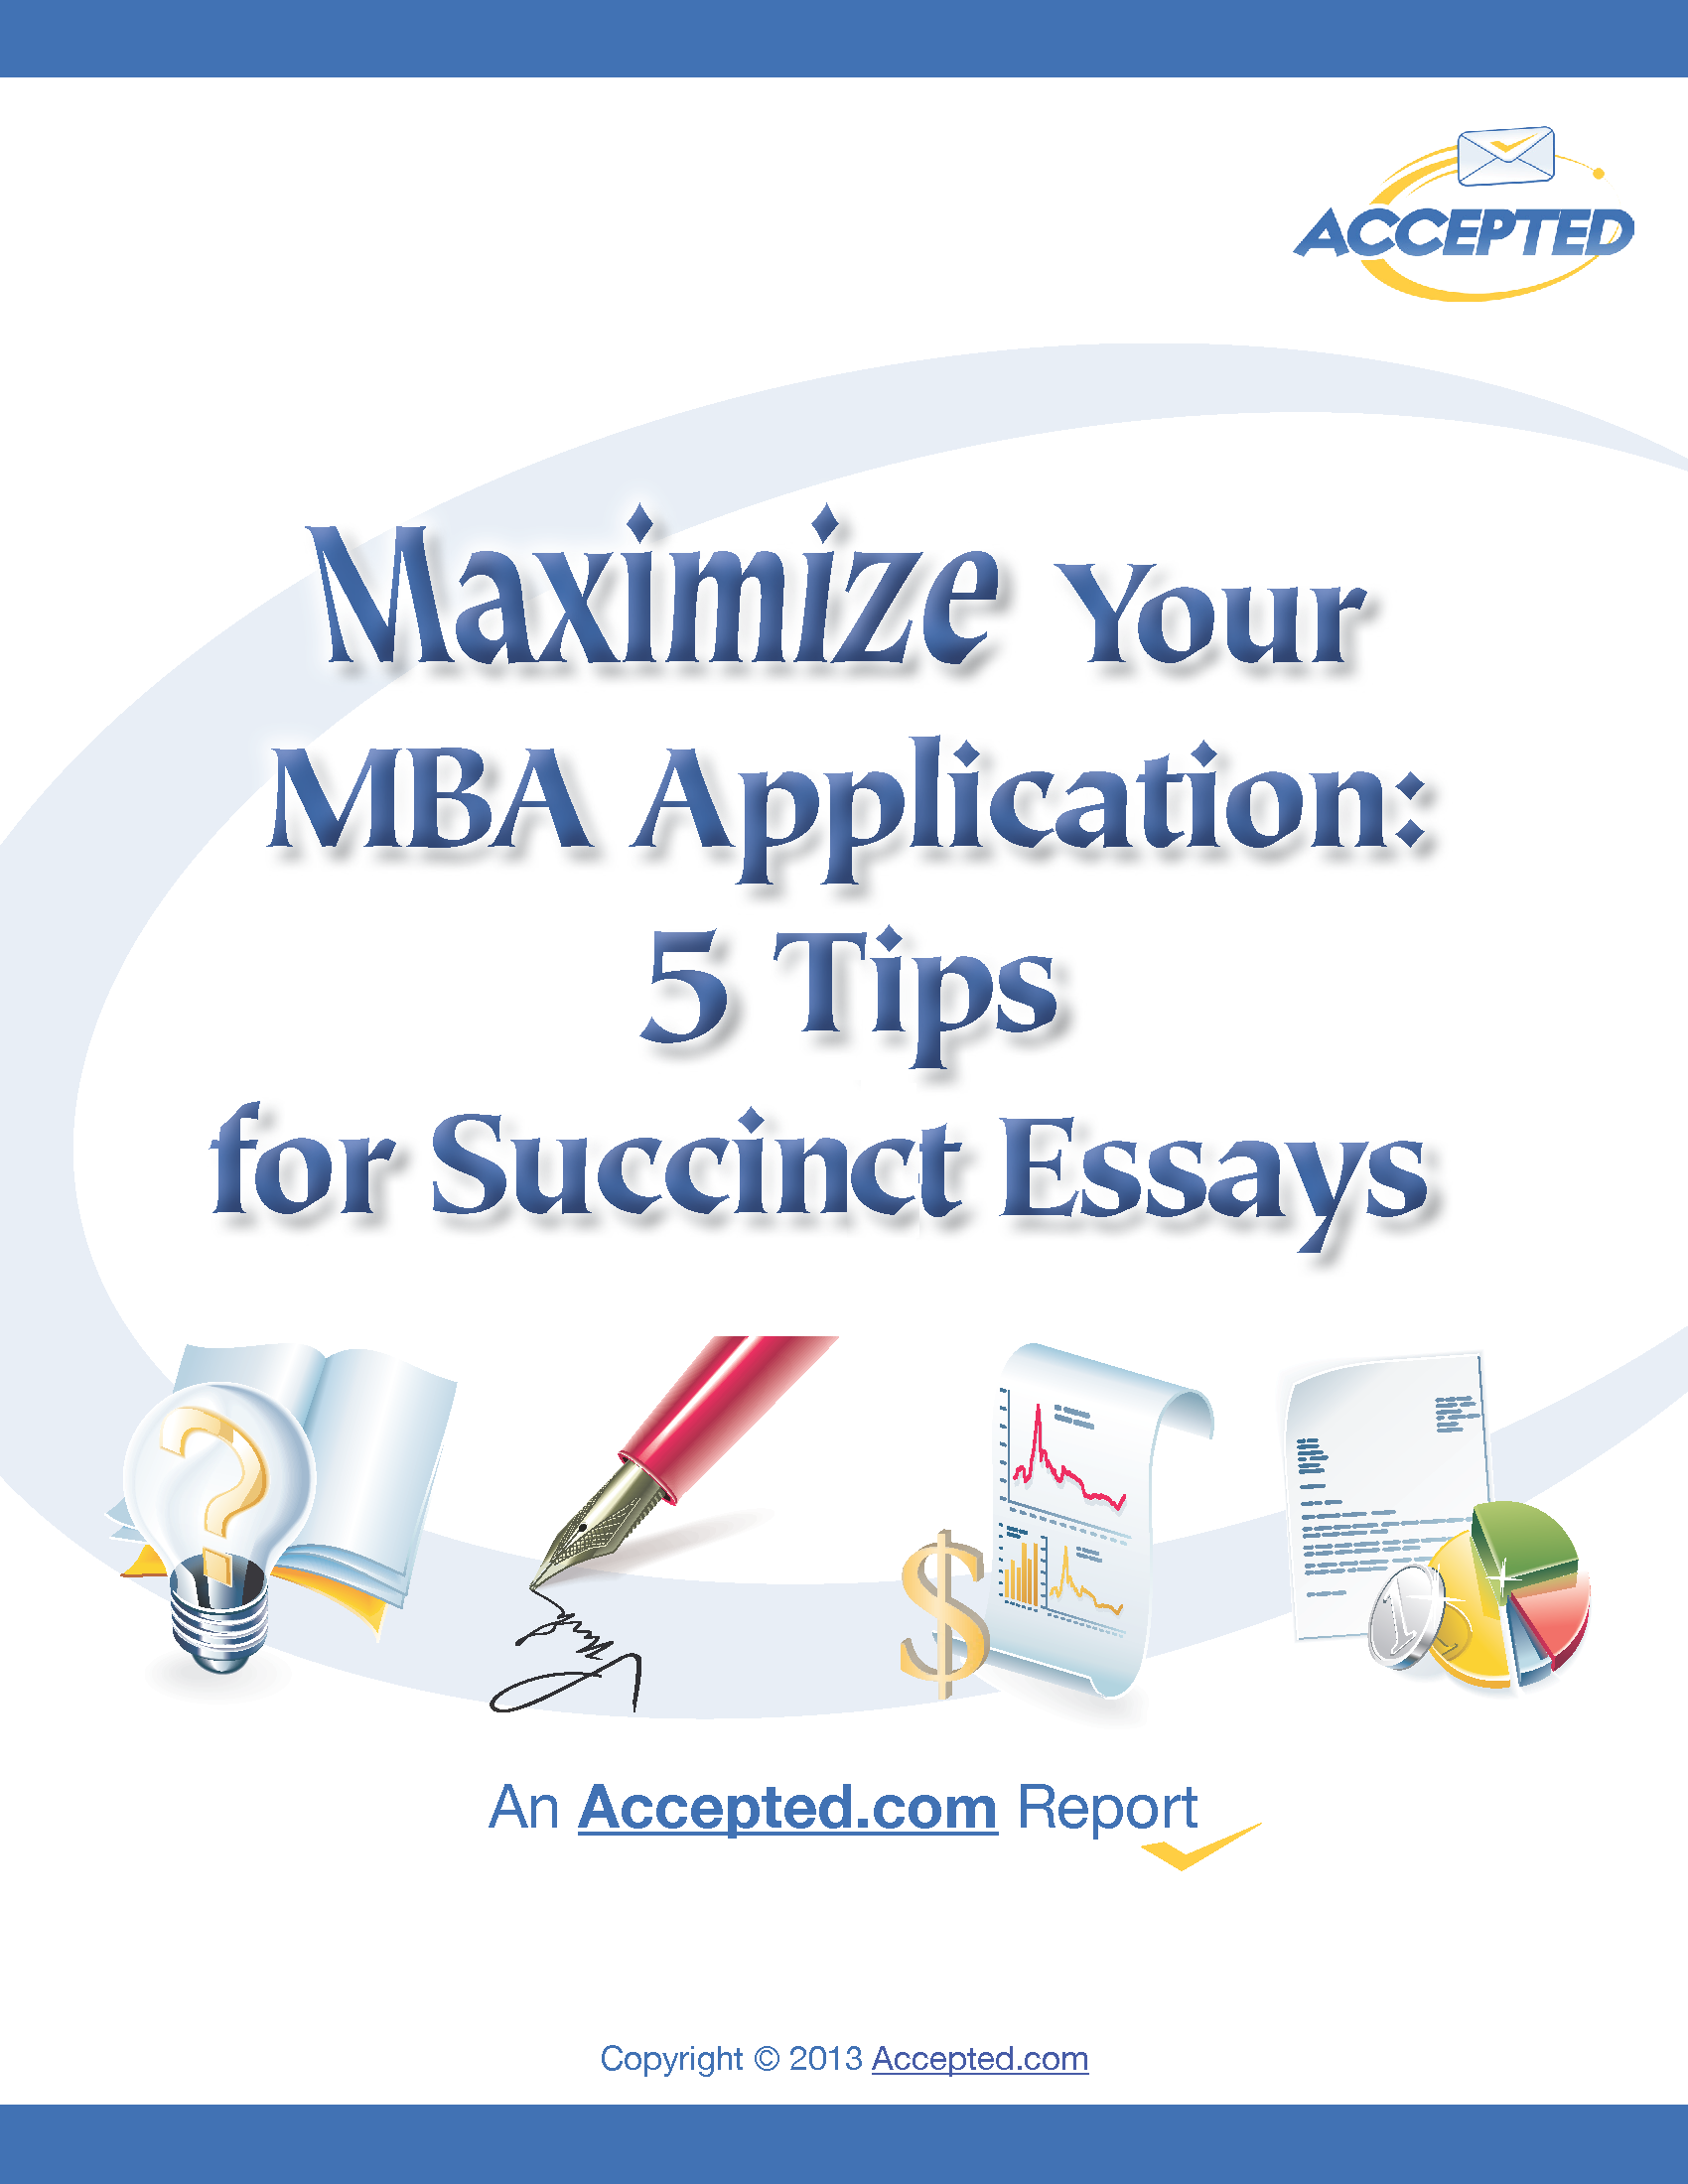 University of Southern California (USC), Marshall School of Business – MBA Essay Samples